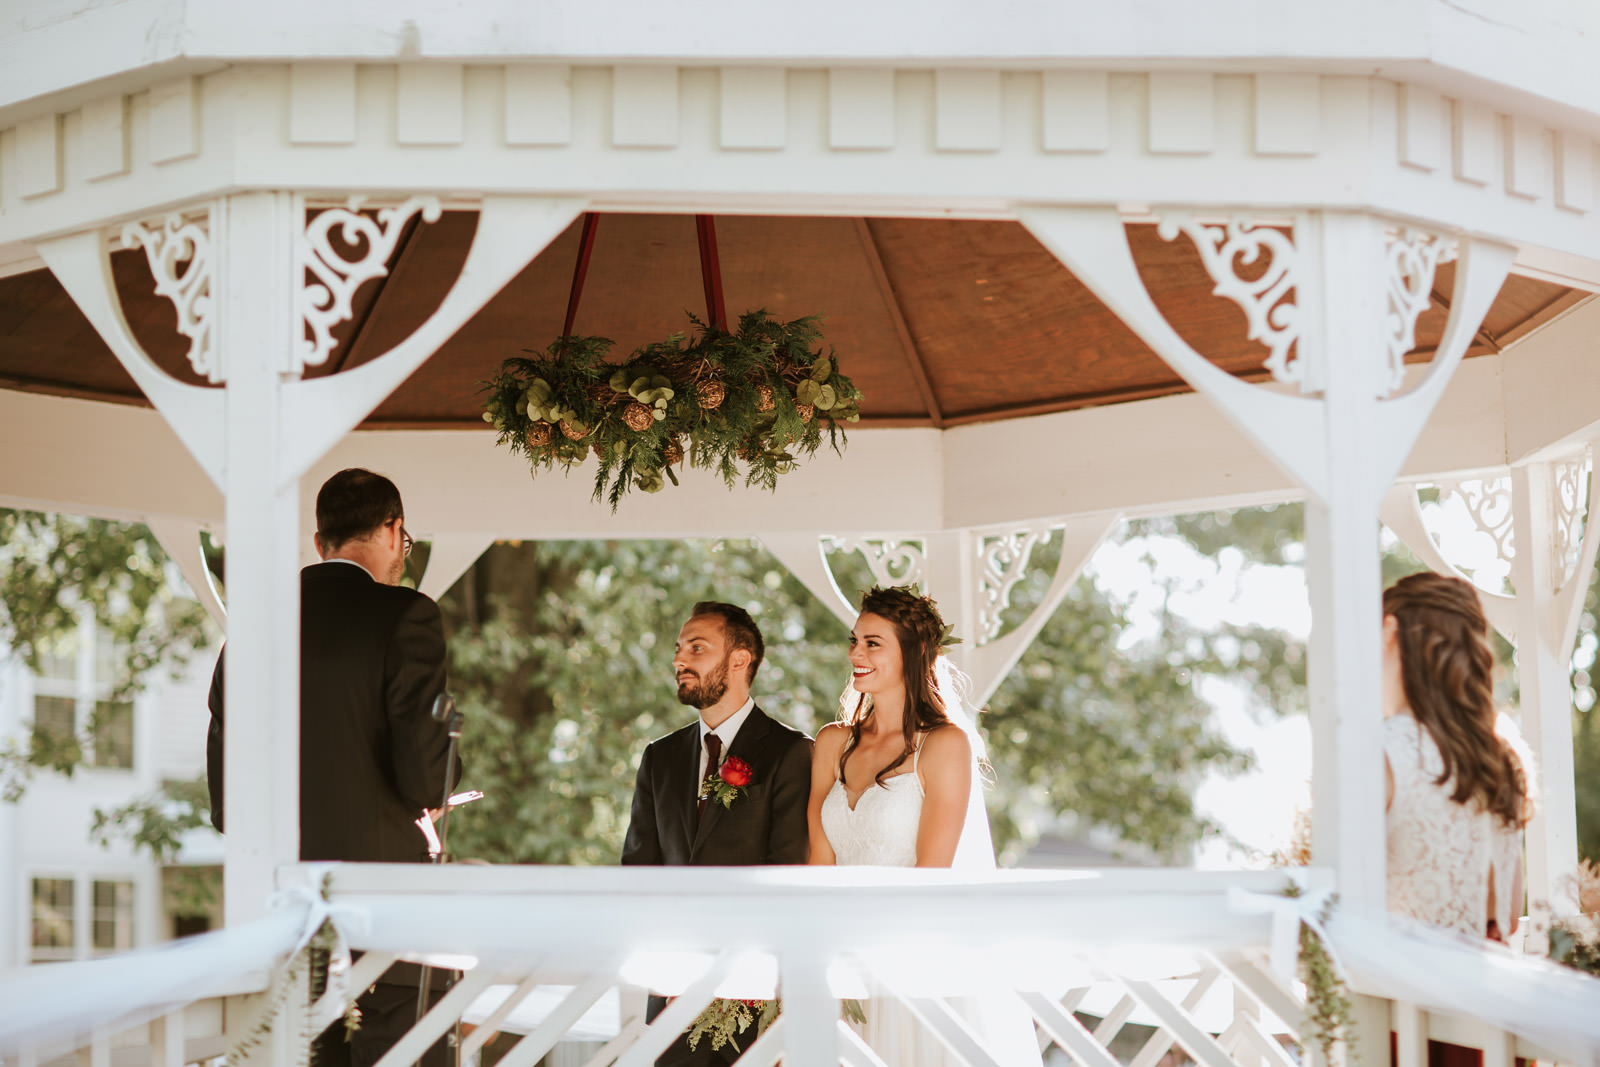 Outdoor wedding ceremony photography